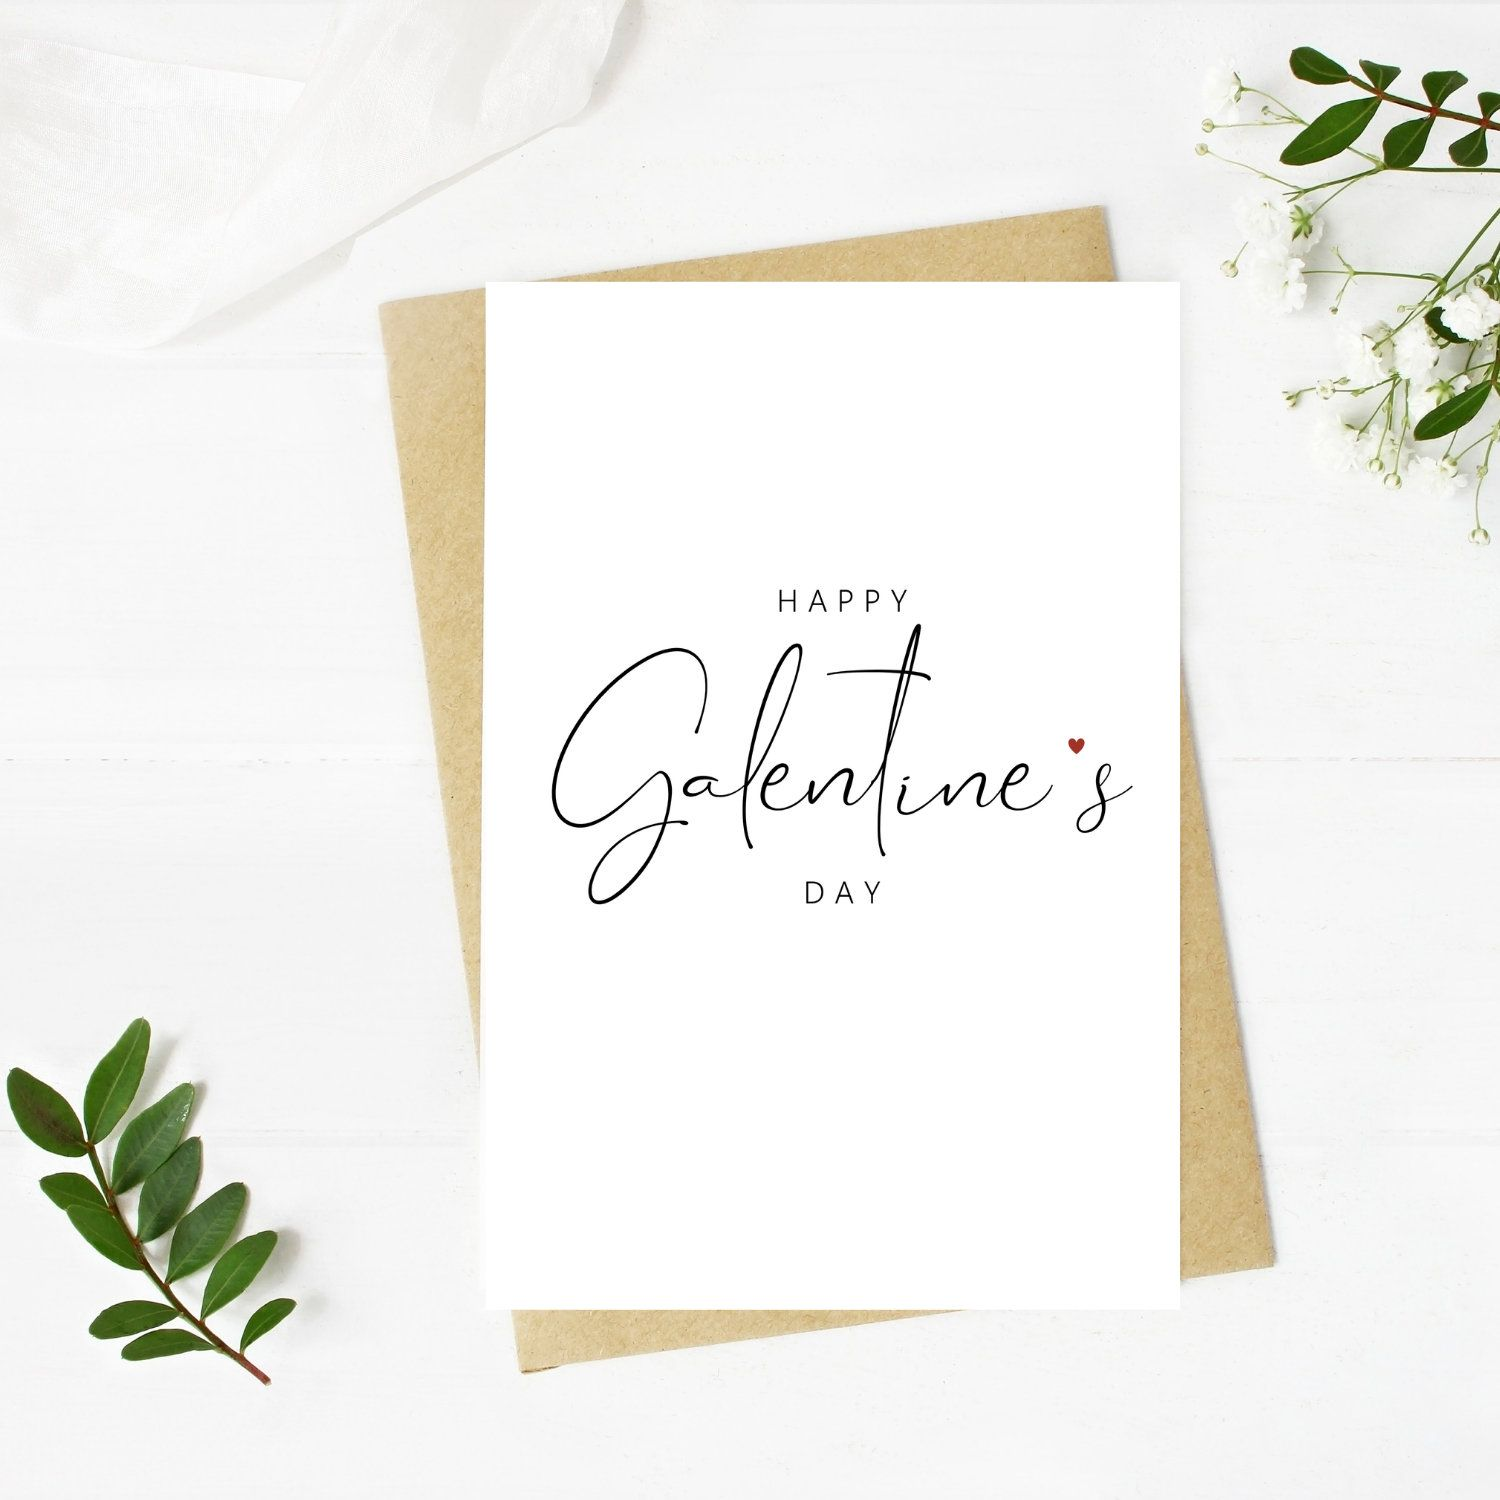 Printable Happy Galentine's Day, Galentine's Day Card